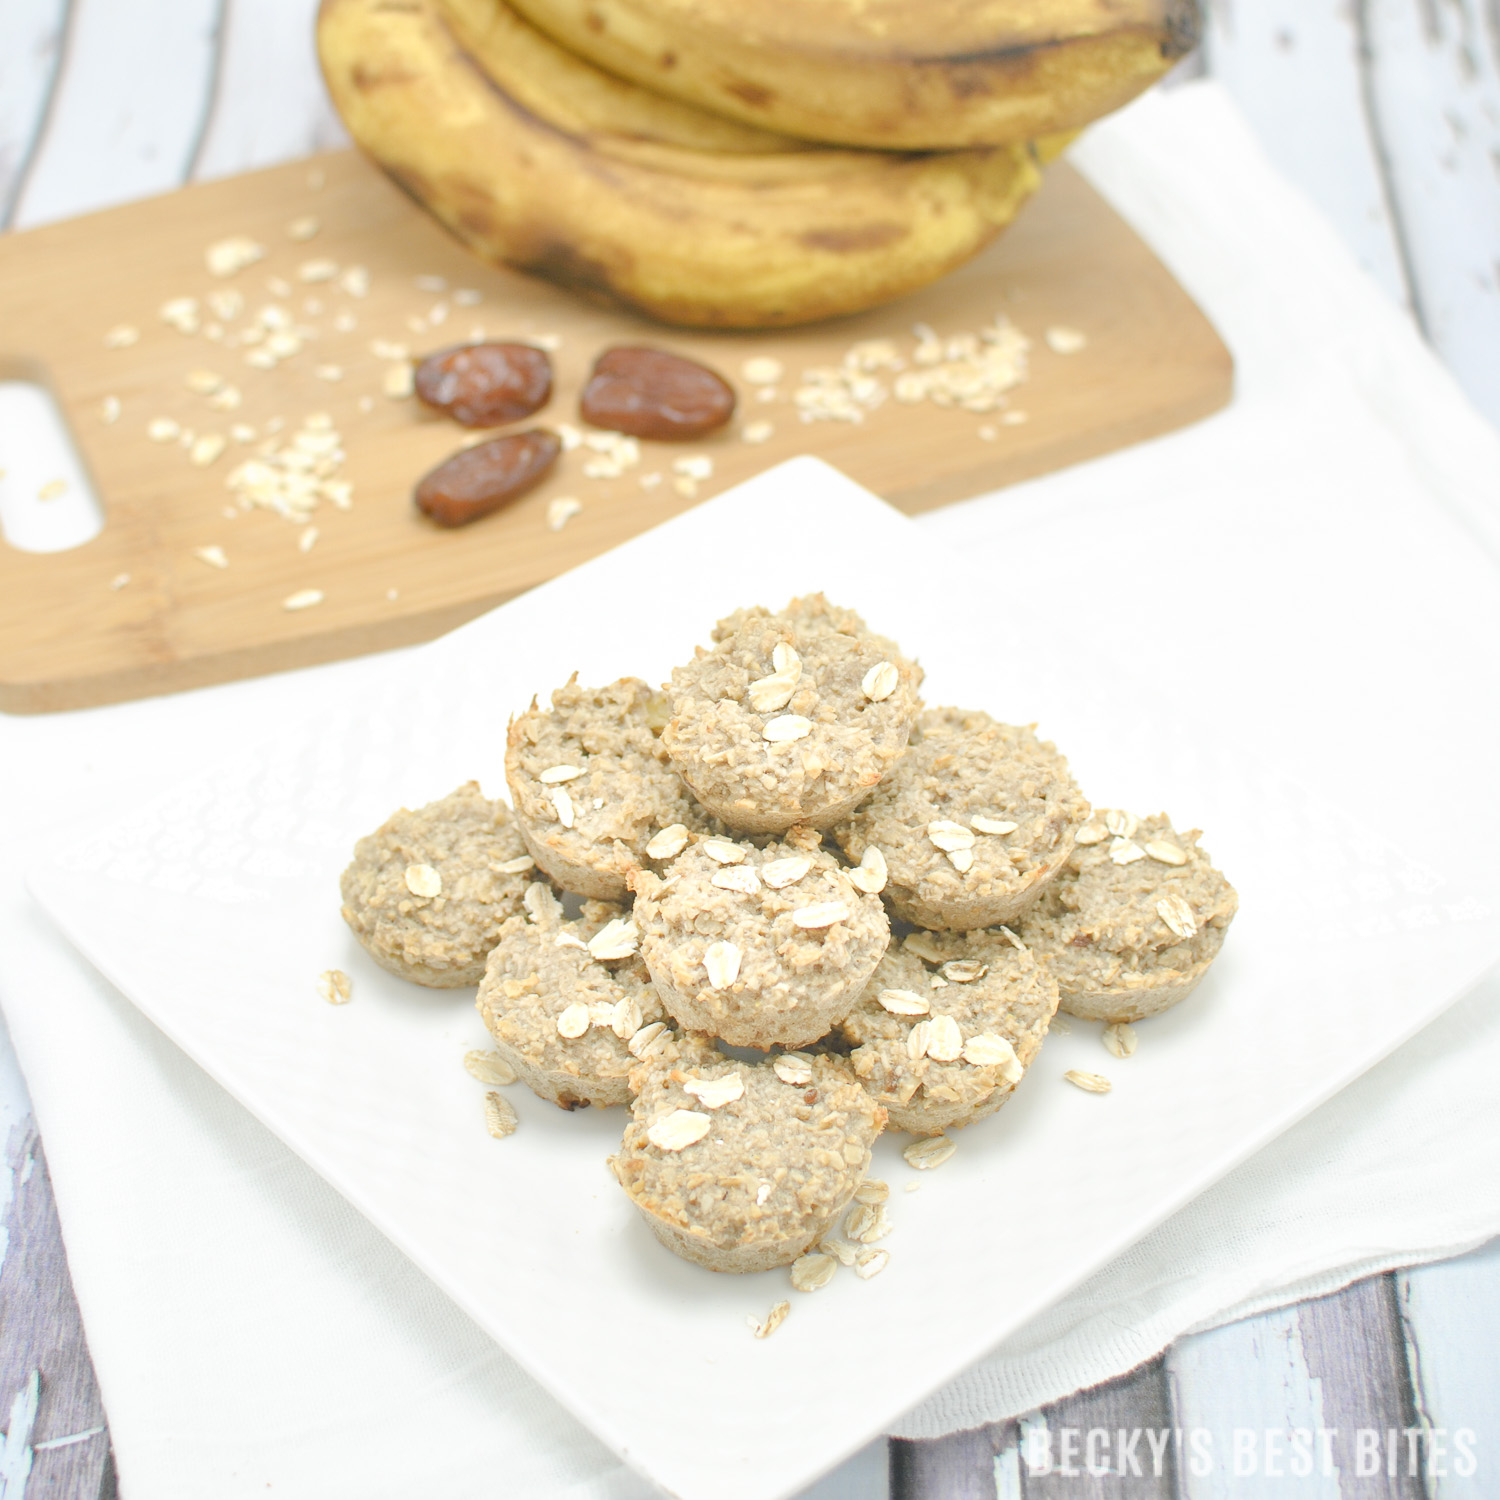 Sugar Free Baby Oat Bites | Healthy & easy recipe perfect for baby led weaning! These nutritional nibbles are sweetened naturally with ripe bananas and dates. Super easy for little hands to grab and feed themselves. They are portable for on-the-go meals or snacks and freeze beautifully! | beckysbestbites.com